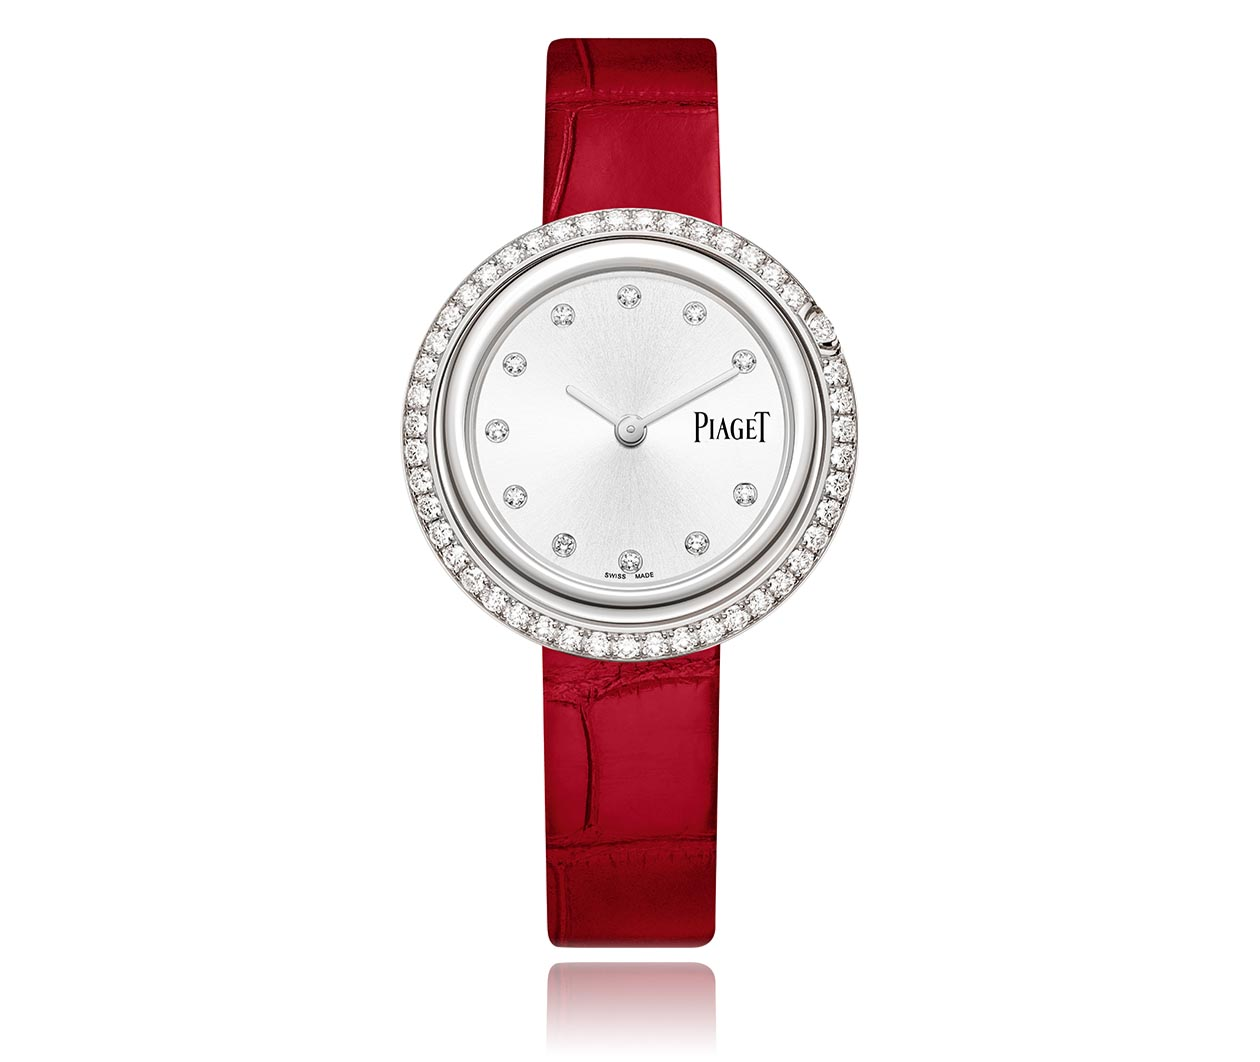 Piaget Possession watch G0A43094 Carousel 1 FINAL